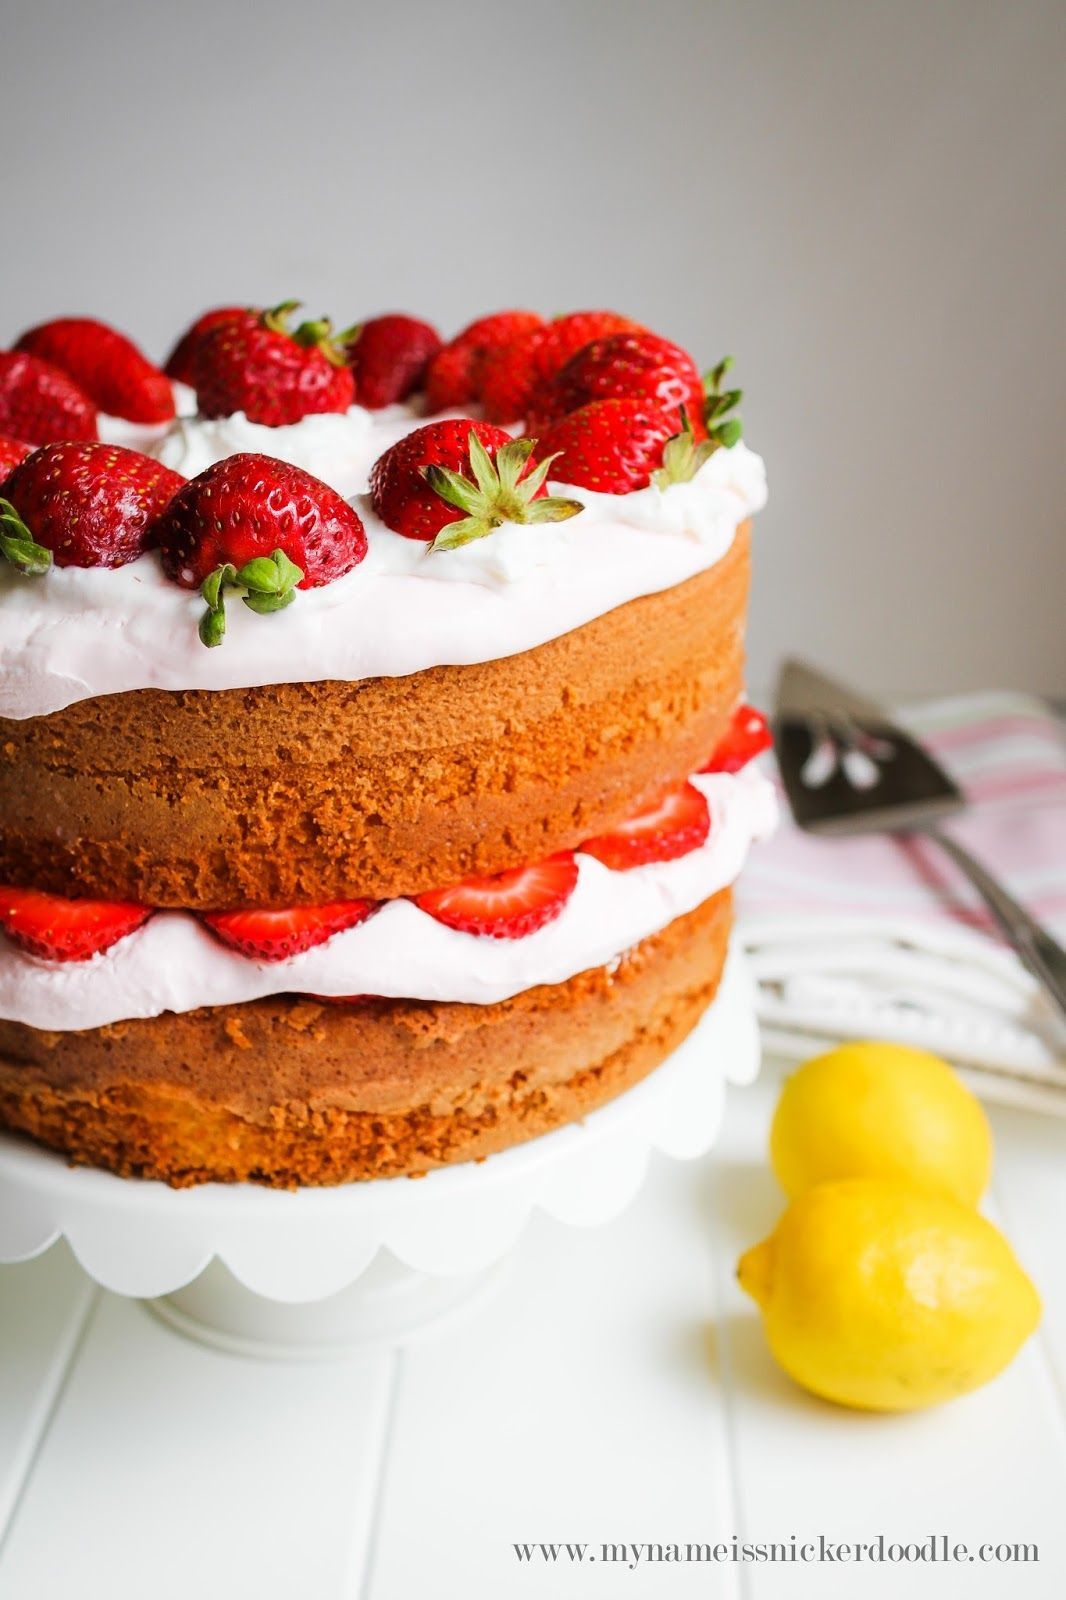 Strawberry Lemonade Cake - My Name Is Snickerdoodle